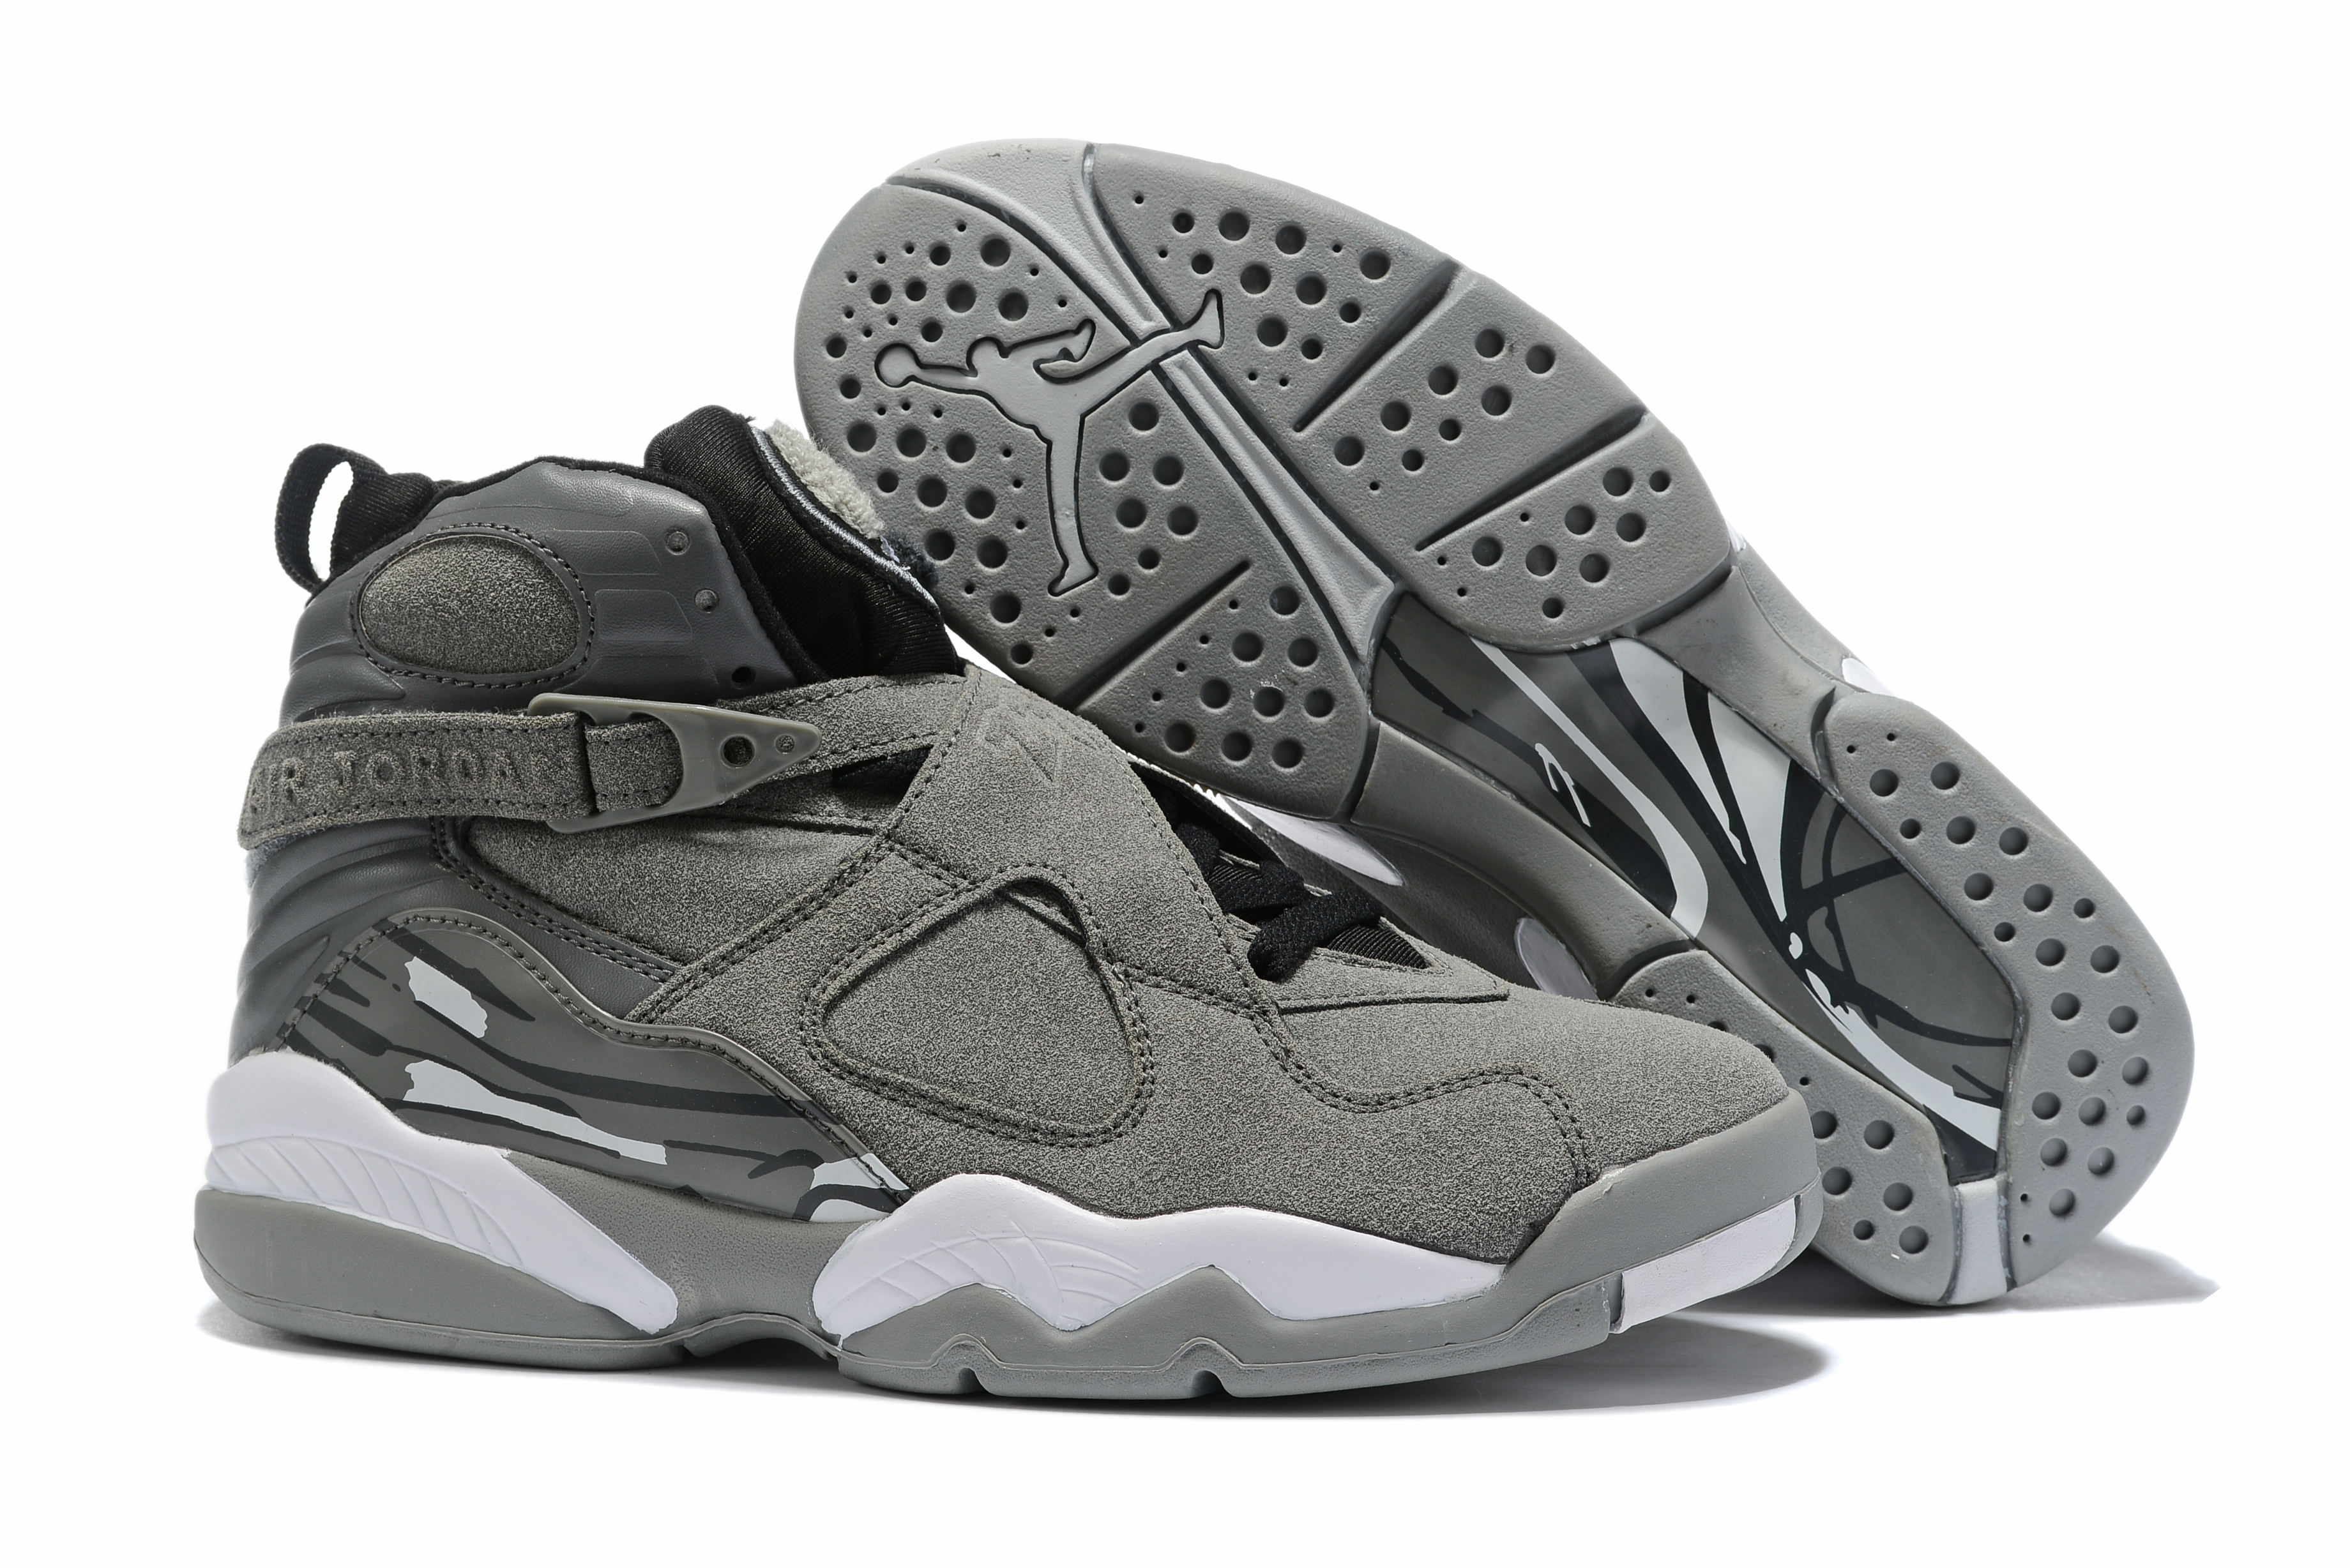 2019 Air Jordan 8 Grey Black White Shoes